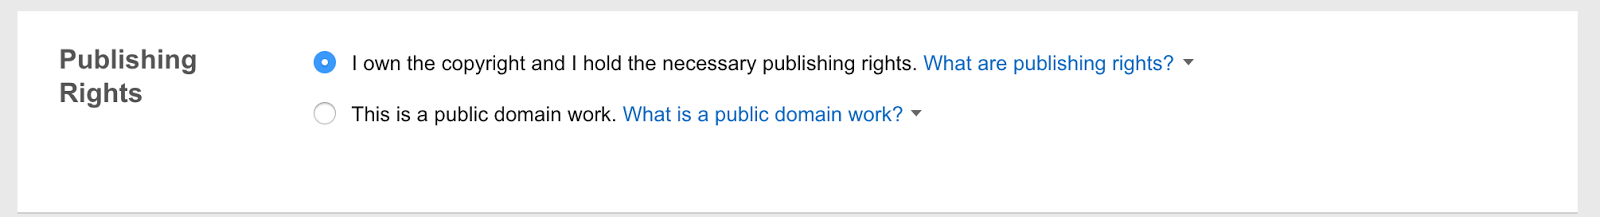 Ebook Details: A radio button input asking to verify that you hold the necessary rights to the works